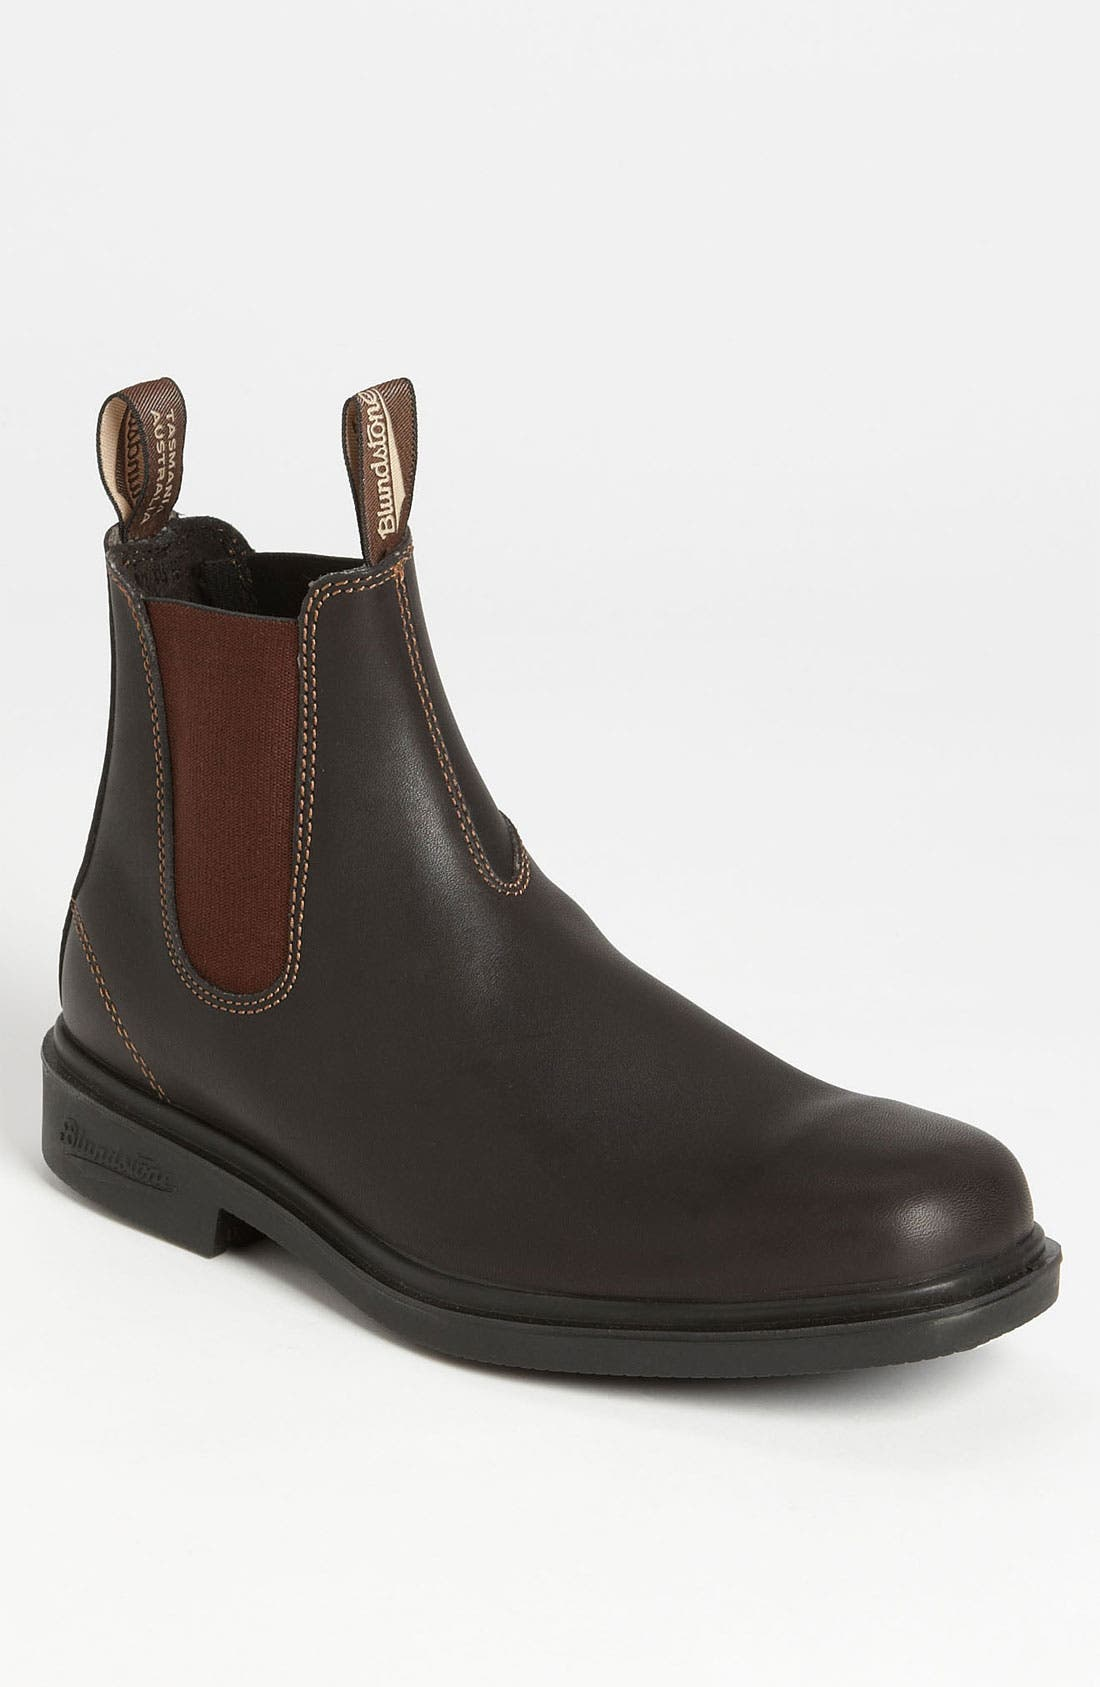 Alternate Image 1 Selected - Blundstone Footwear Chelsea Boot (Men)